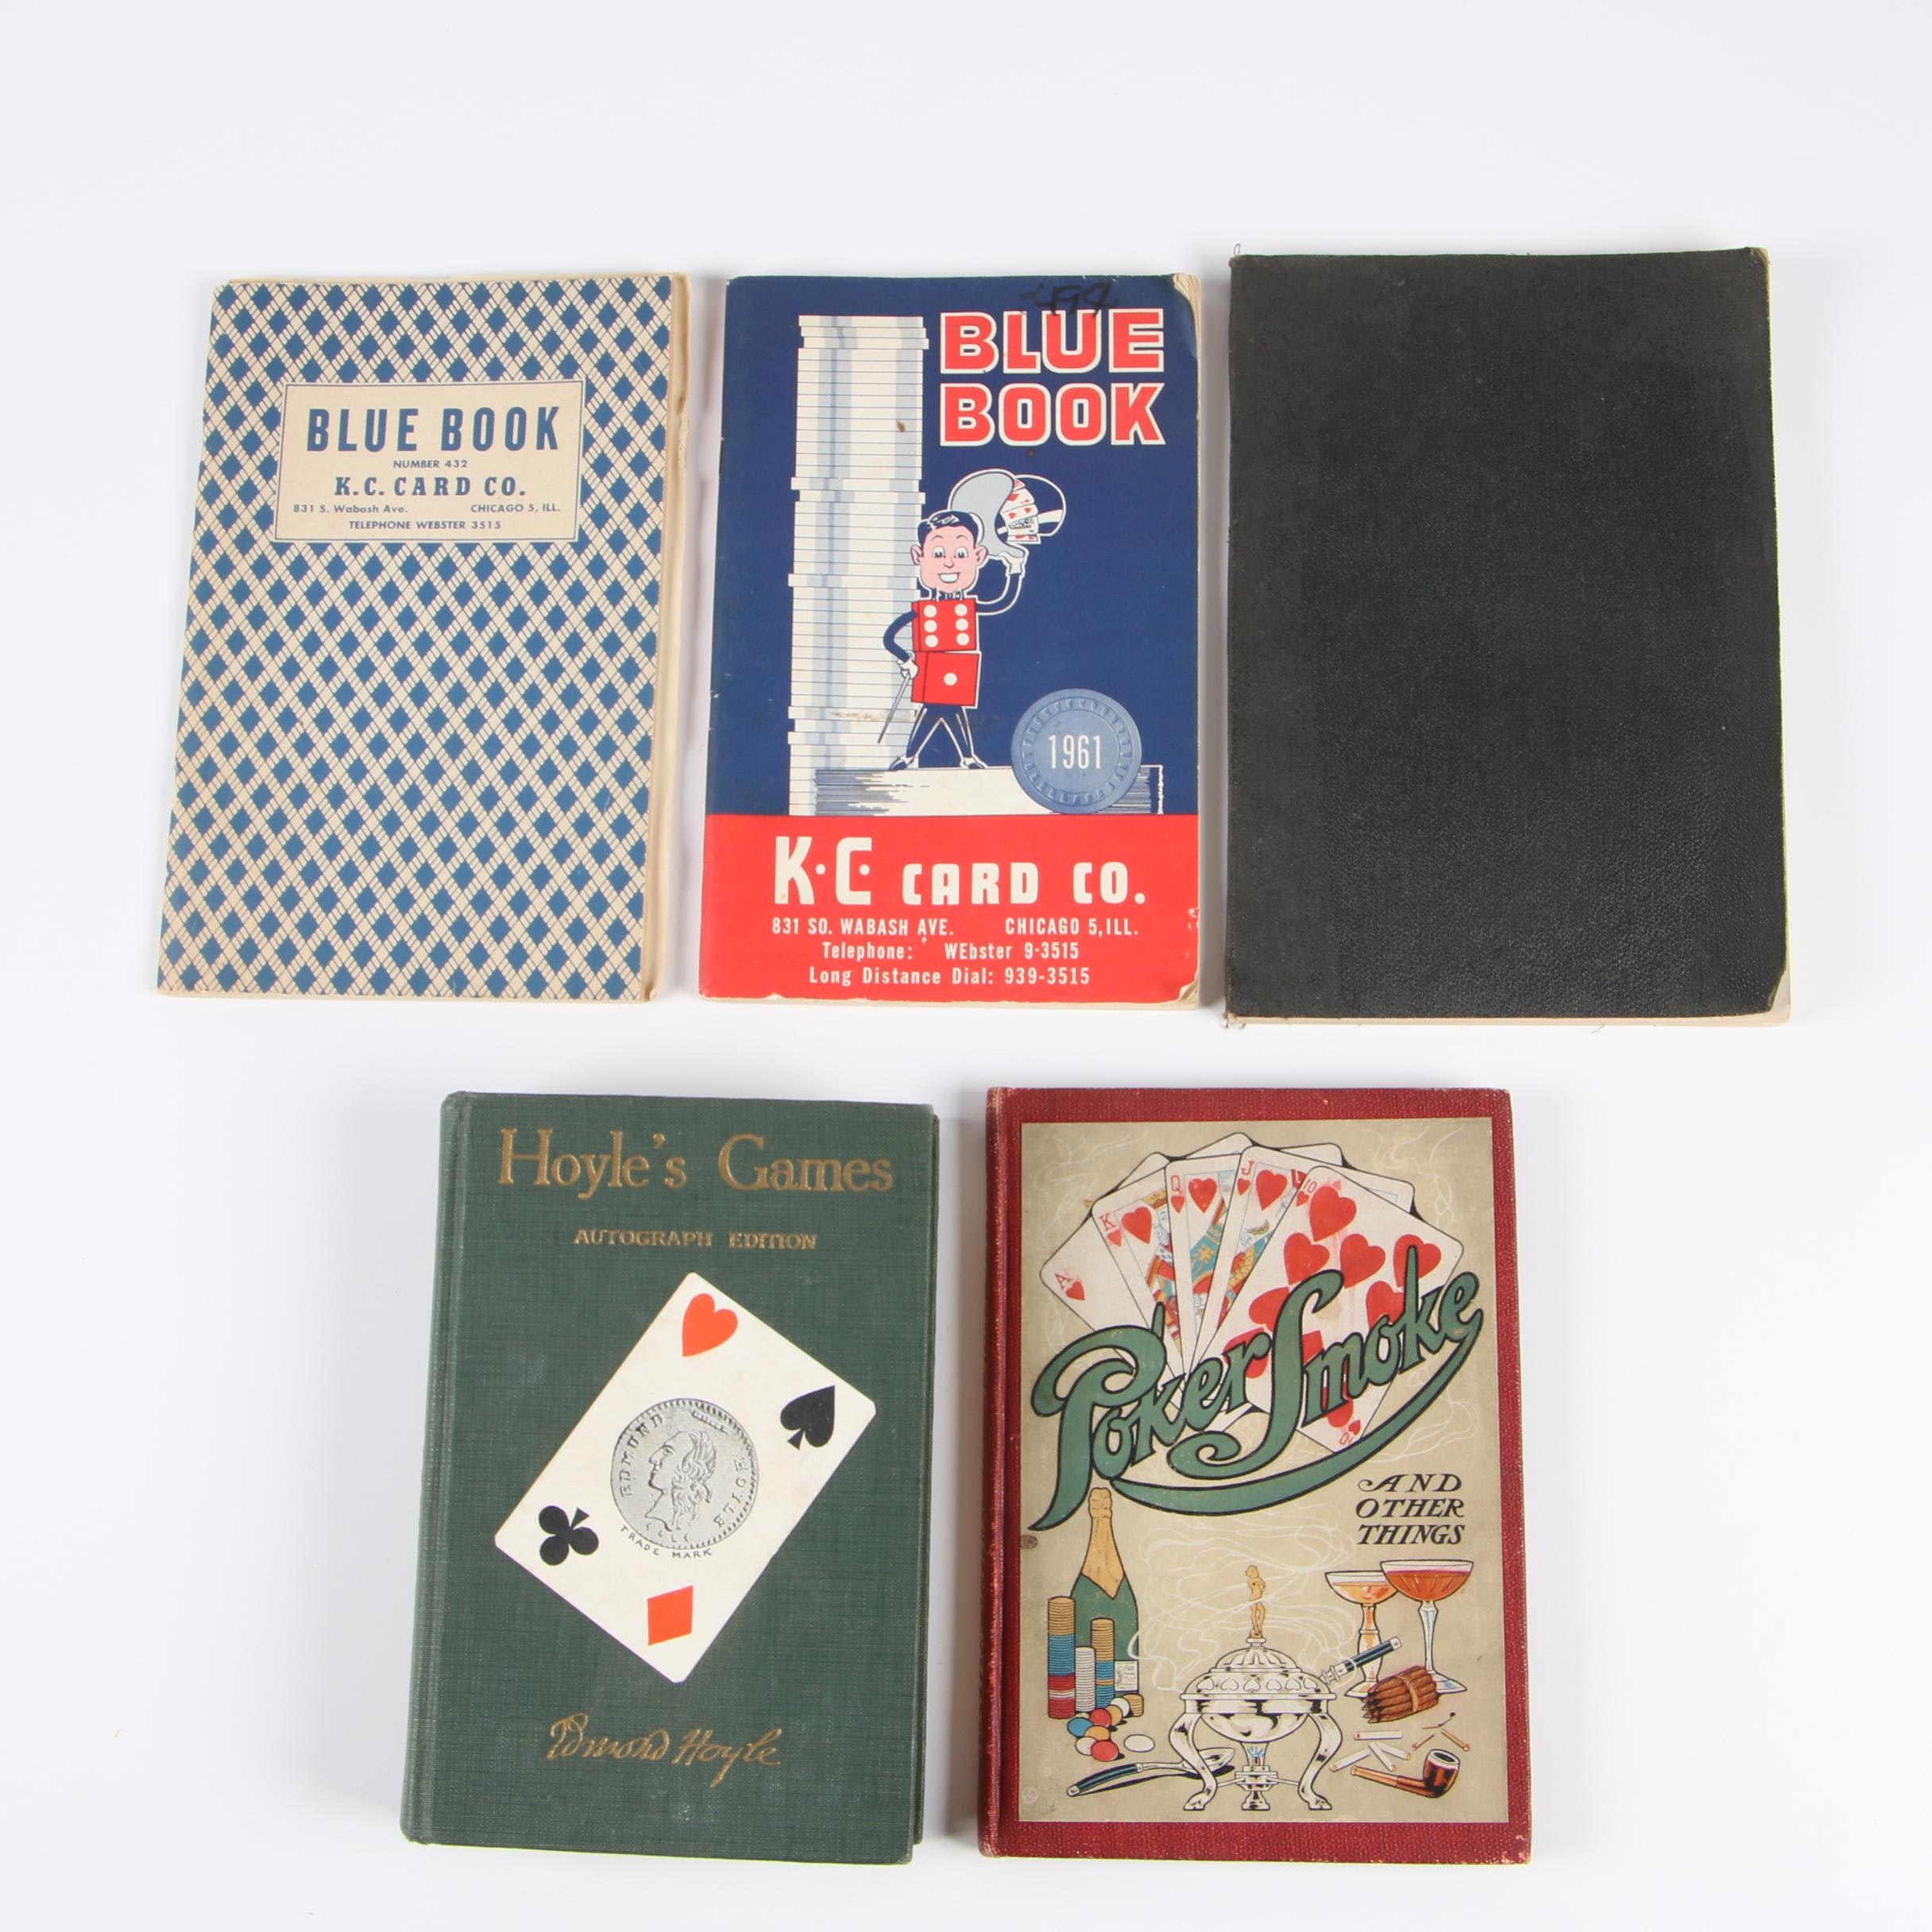 """Hoyle's Games"" Autograph Edition with other Books on Cards and Gambling, 1929"